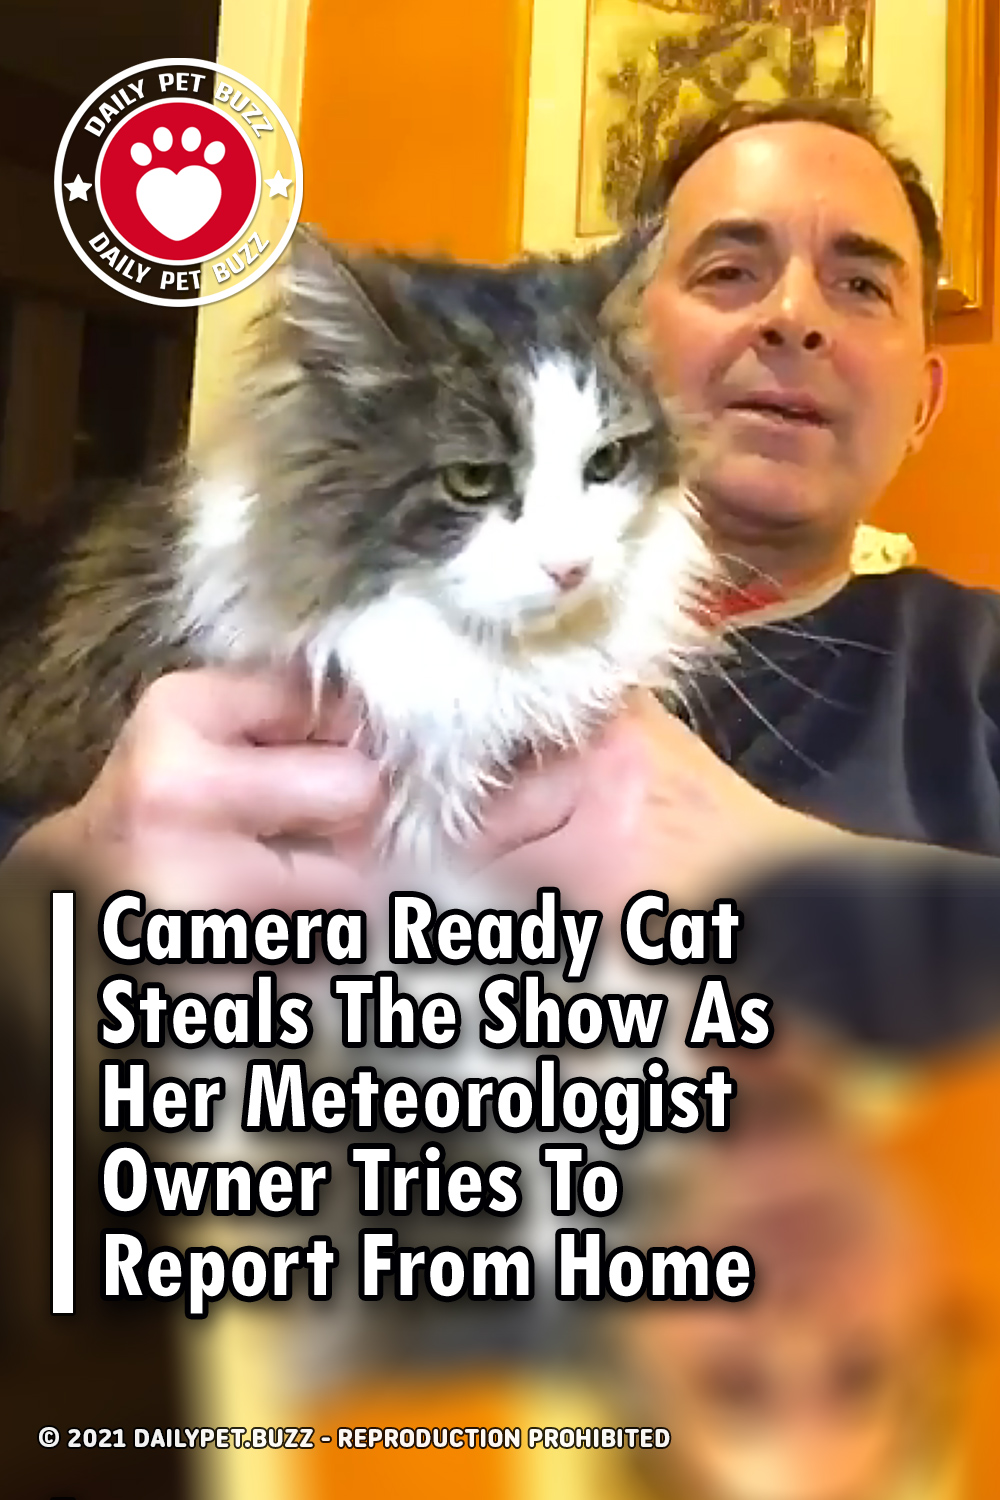 Camera Ready Cat Steals The Show As Her Meteorologist Owner Tries To Report From Home